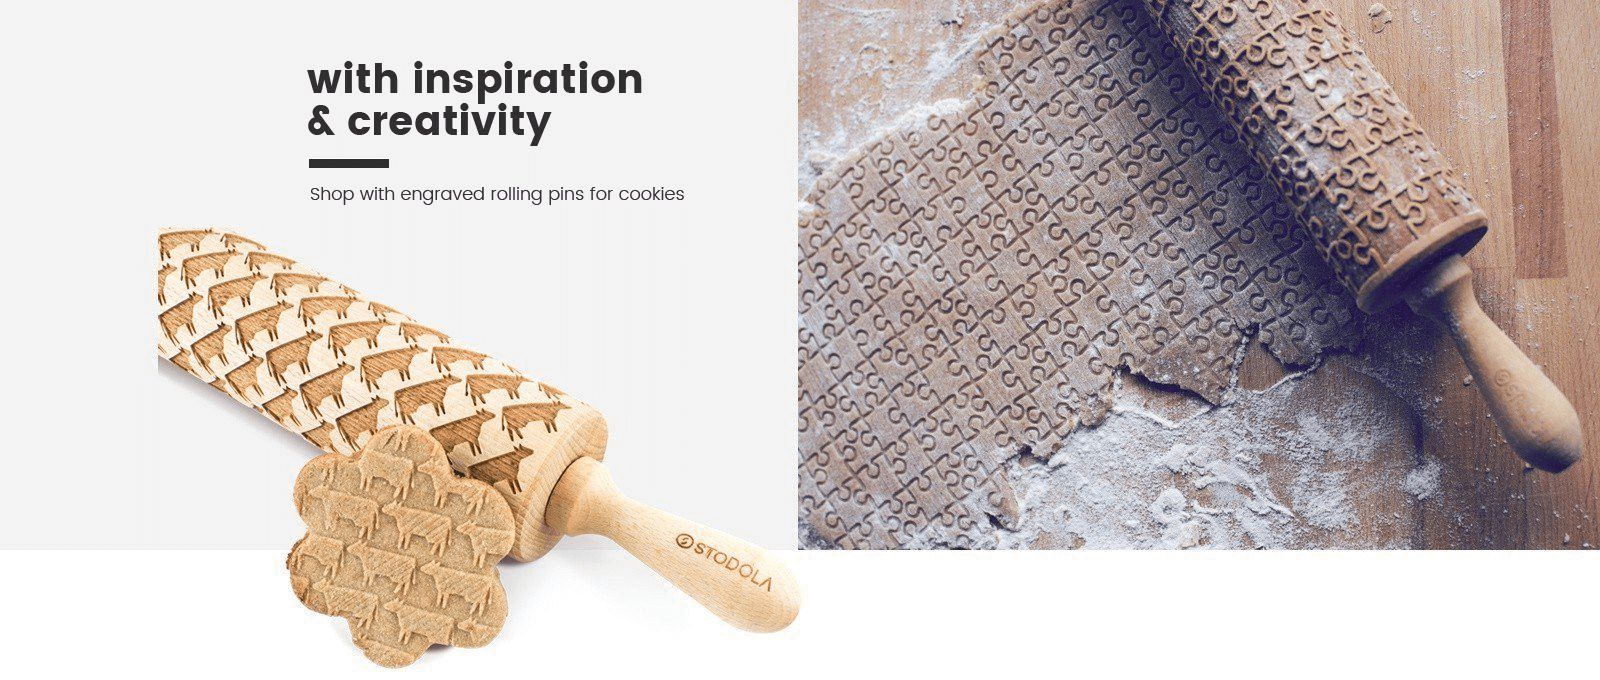 Shop with engraved rolling pins for cookies